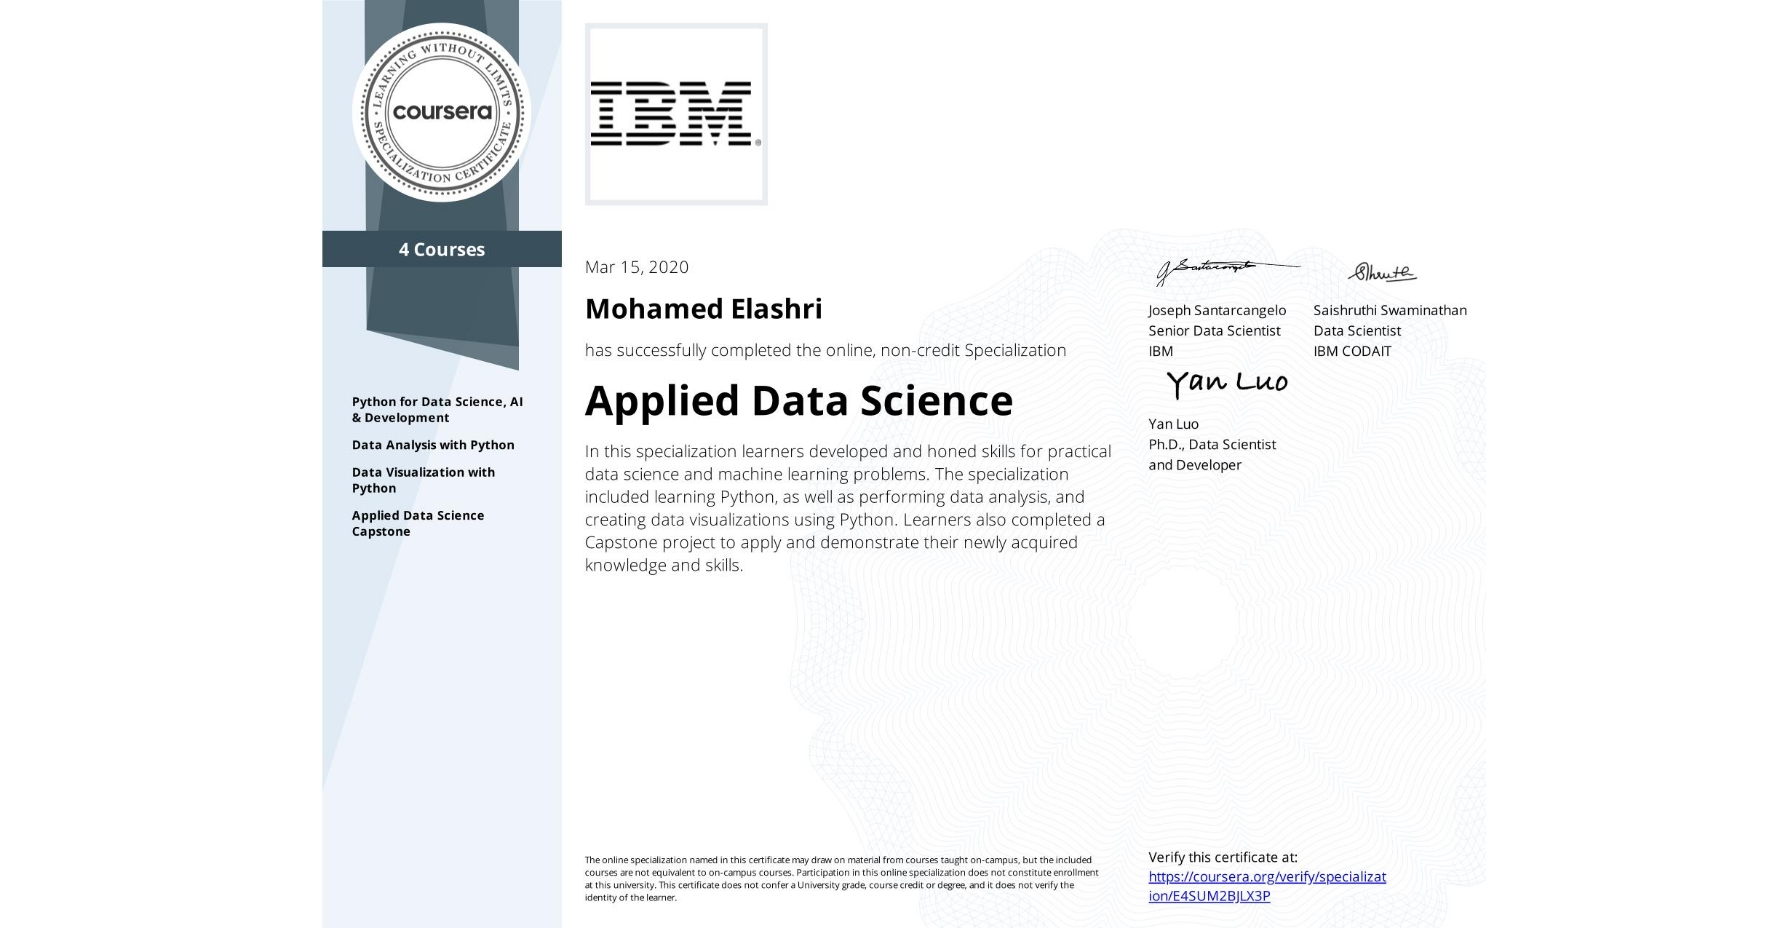 View certificate for Mohamed Elashri, Applied Data Science, offered through Coursera. In this specialization learners developed and honed skills for practical data science and machine learning problems. The specialization included learning Python, as well as  performing data analysis, and creating data visualizations using Python. Learners also completed a Capstone project to apply and demonstrate their newly acquired knowledge and skills.